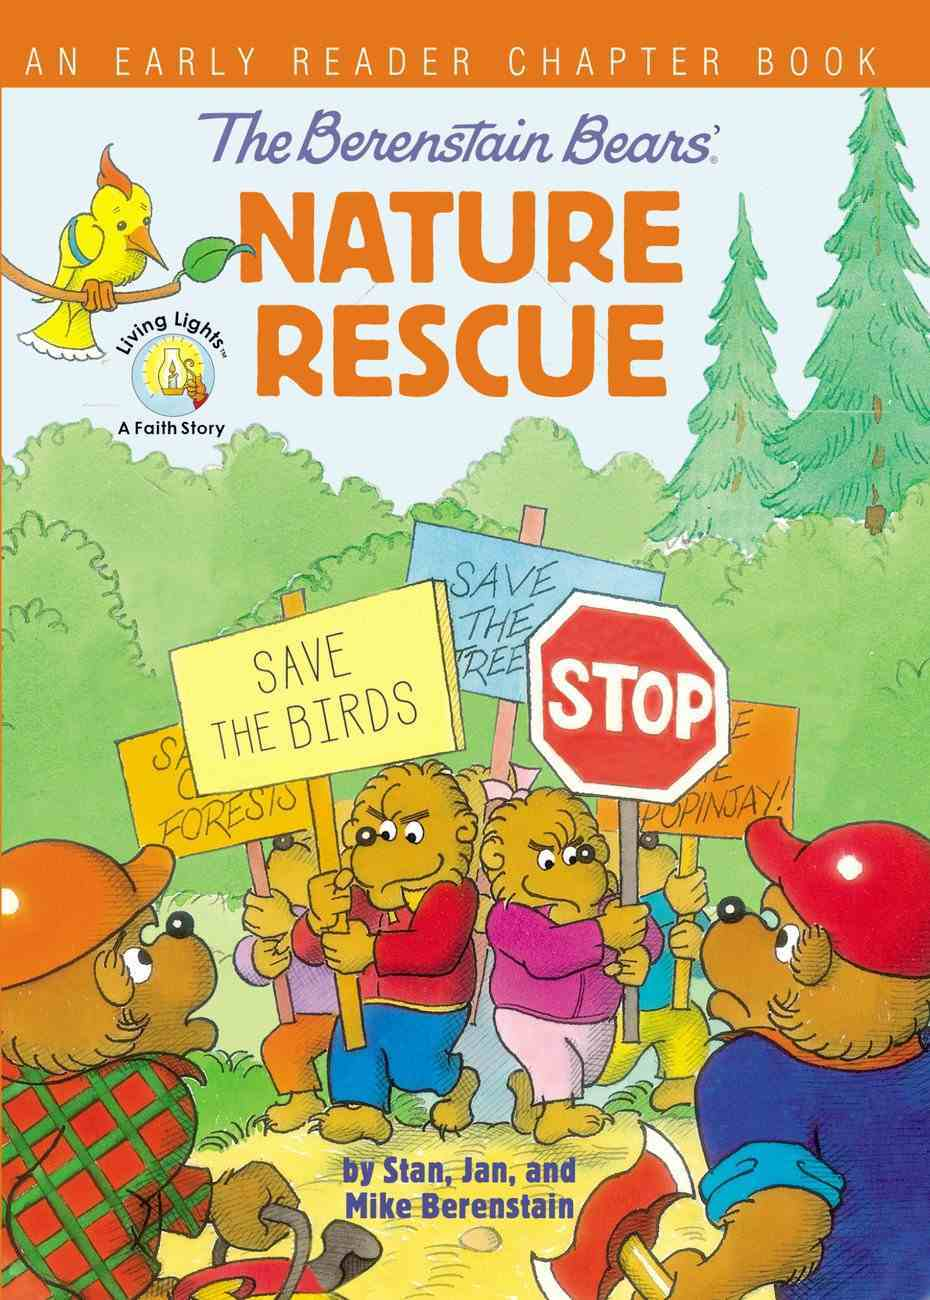 Berenstain Bears' Nature Rescue, The: An Early Reader Chapter Book (The Berenstain Bears Series) Paperback